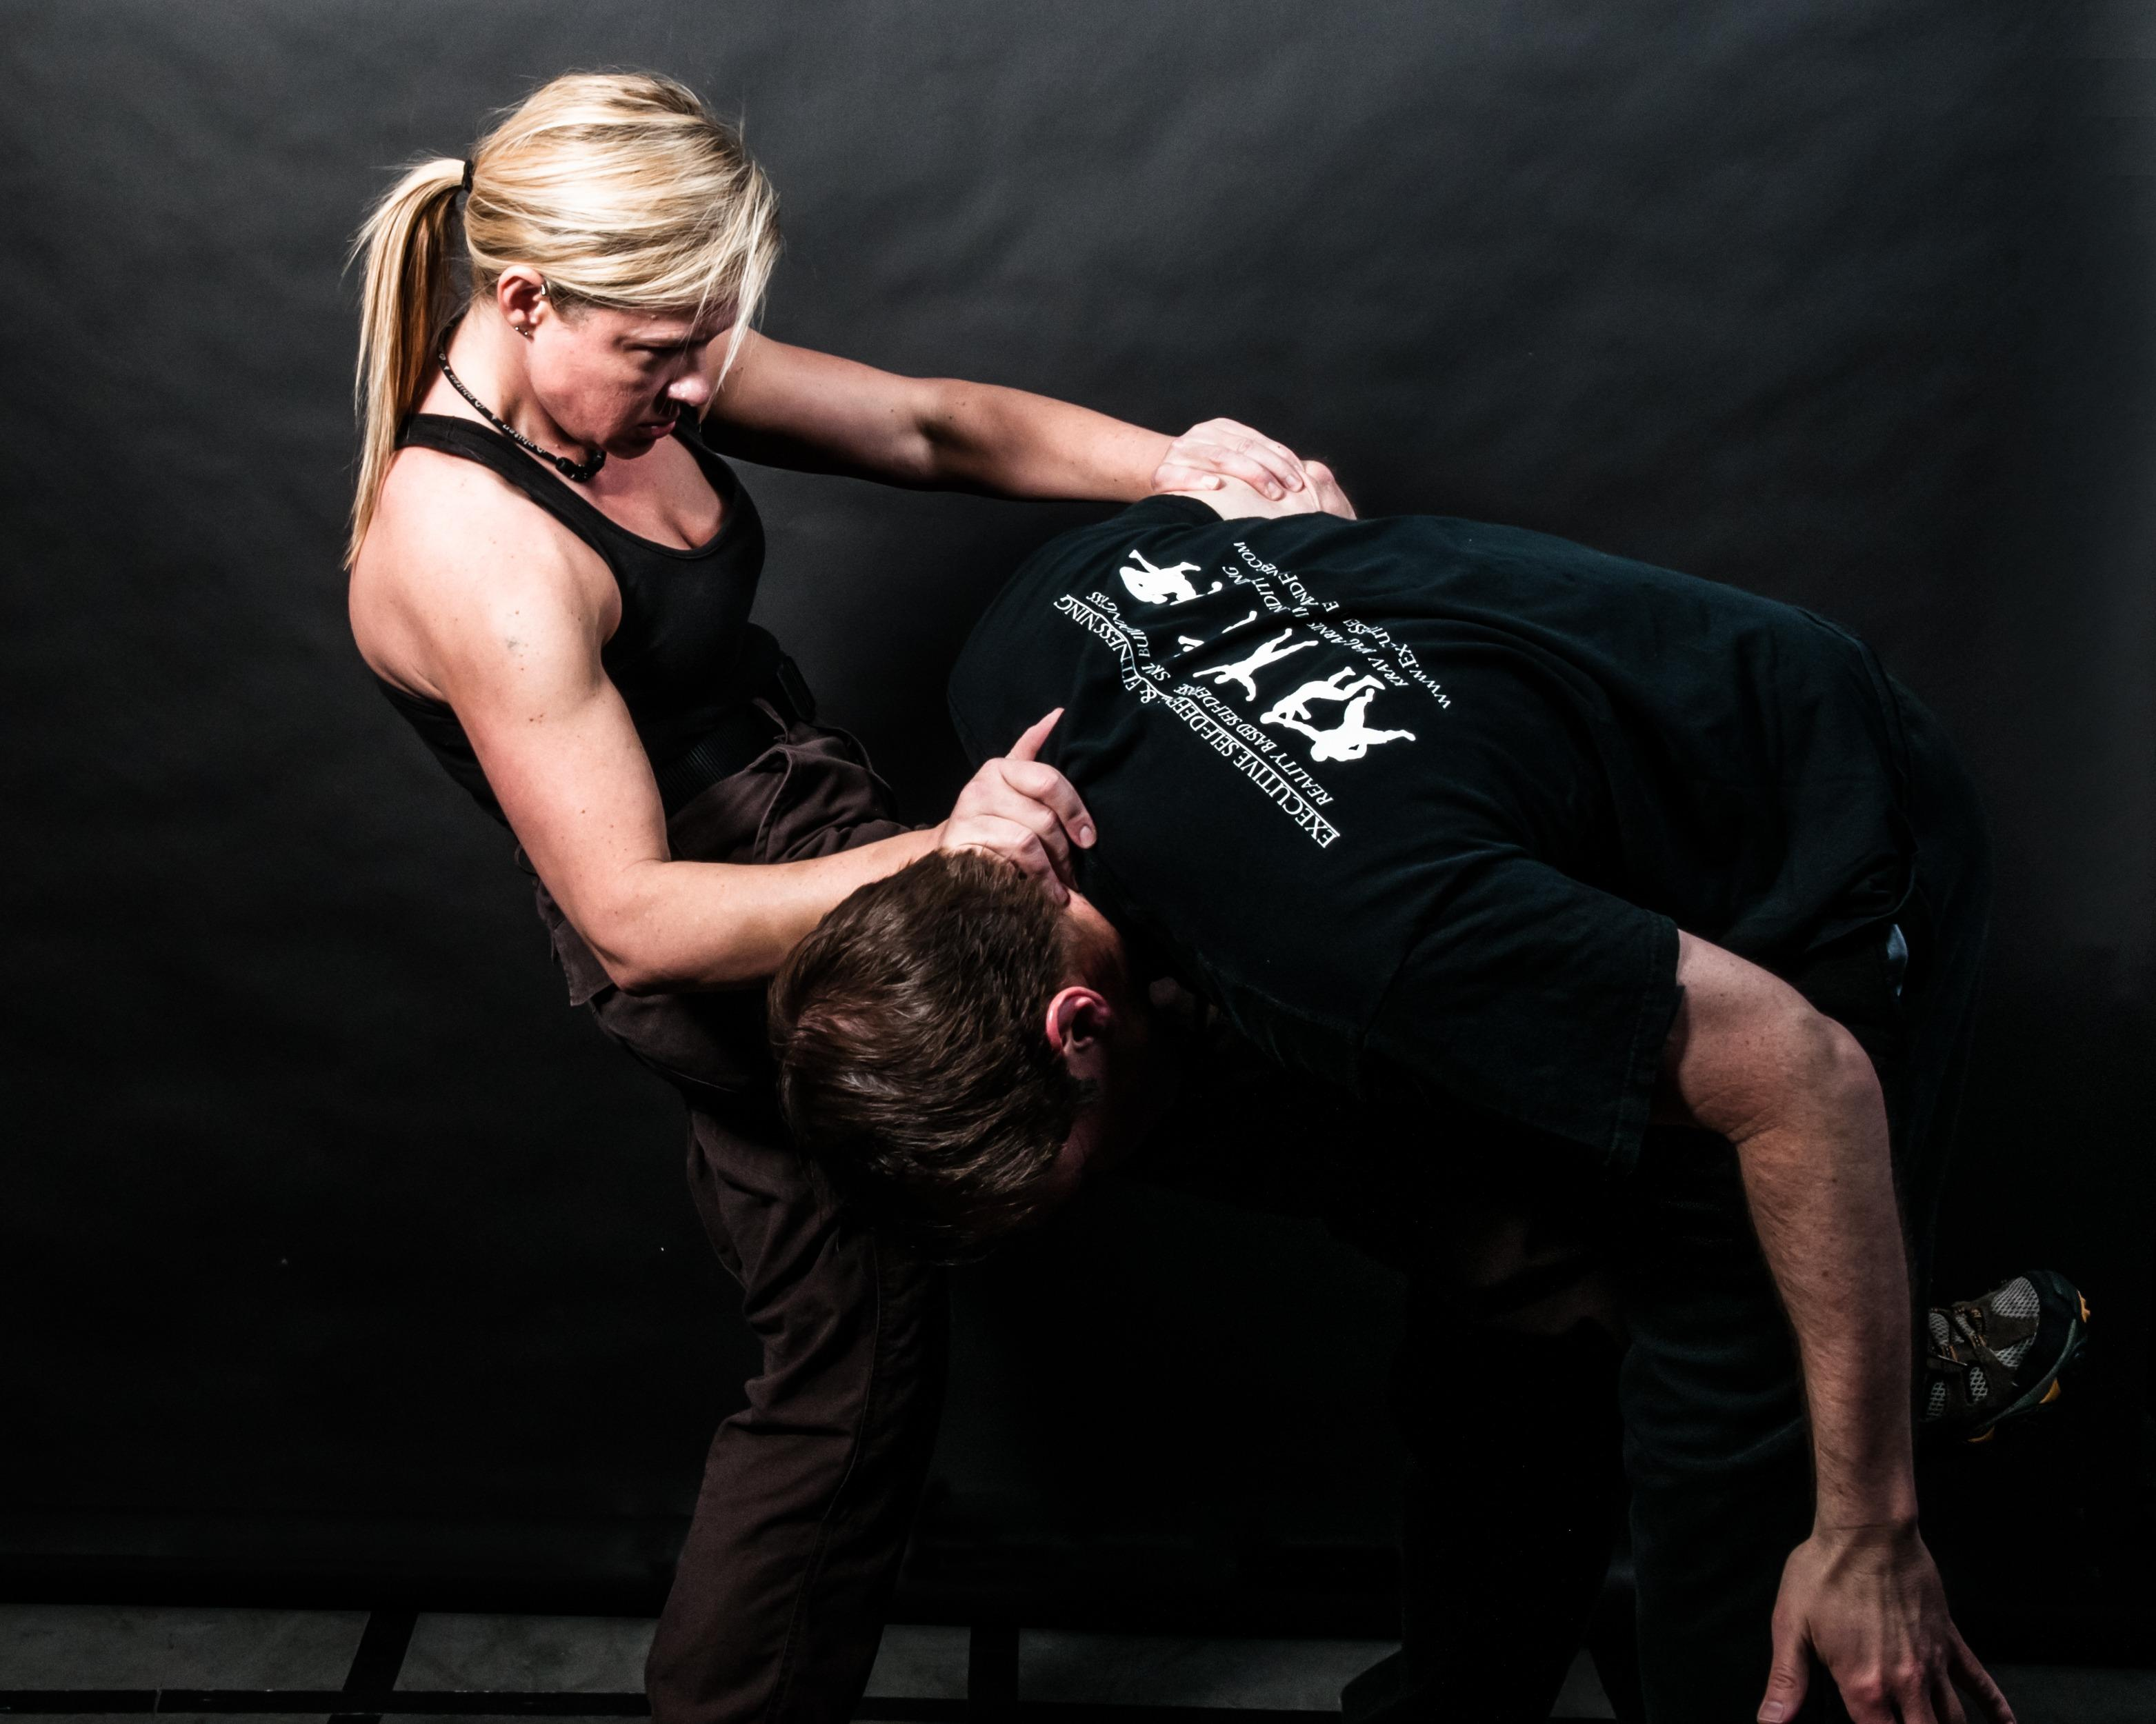 Executive Self-defense and Fitness image 2